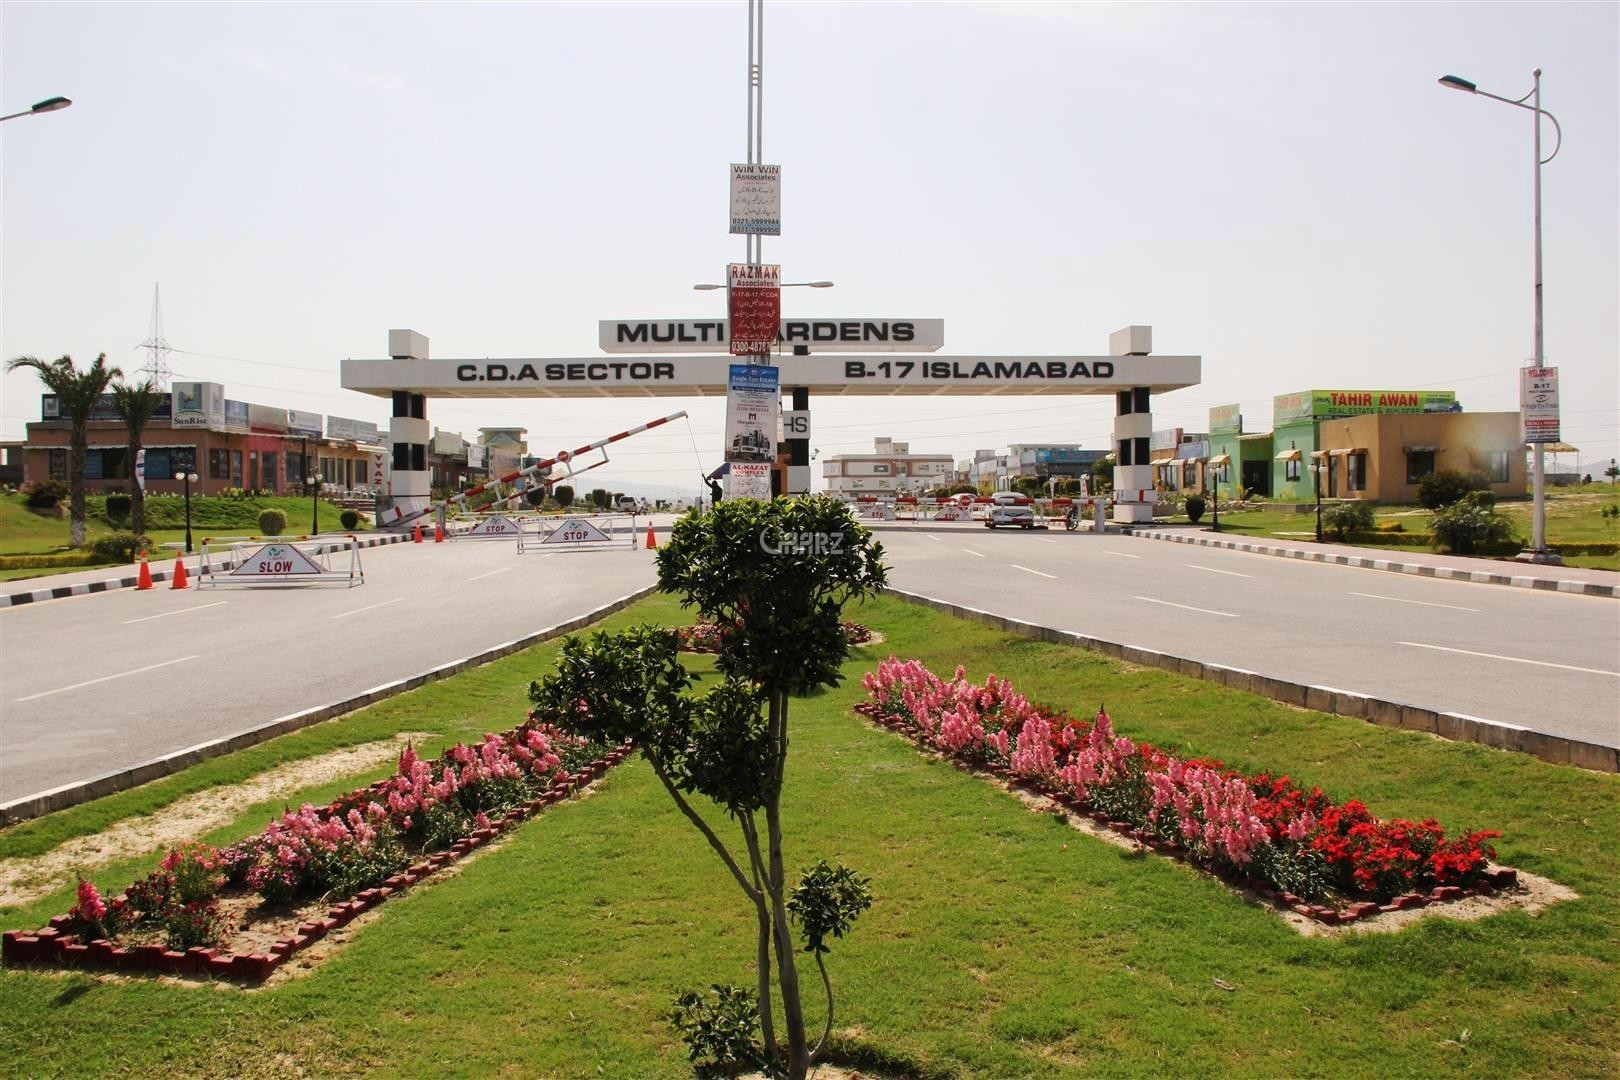 10 Marla Plot in B-17 Block-E, Islamabad is for Sale